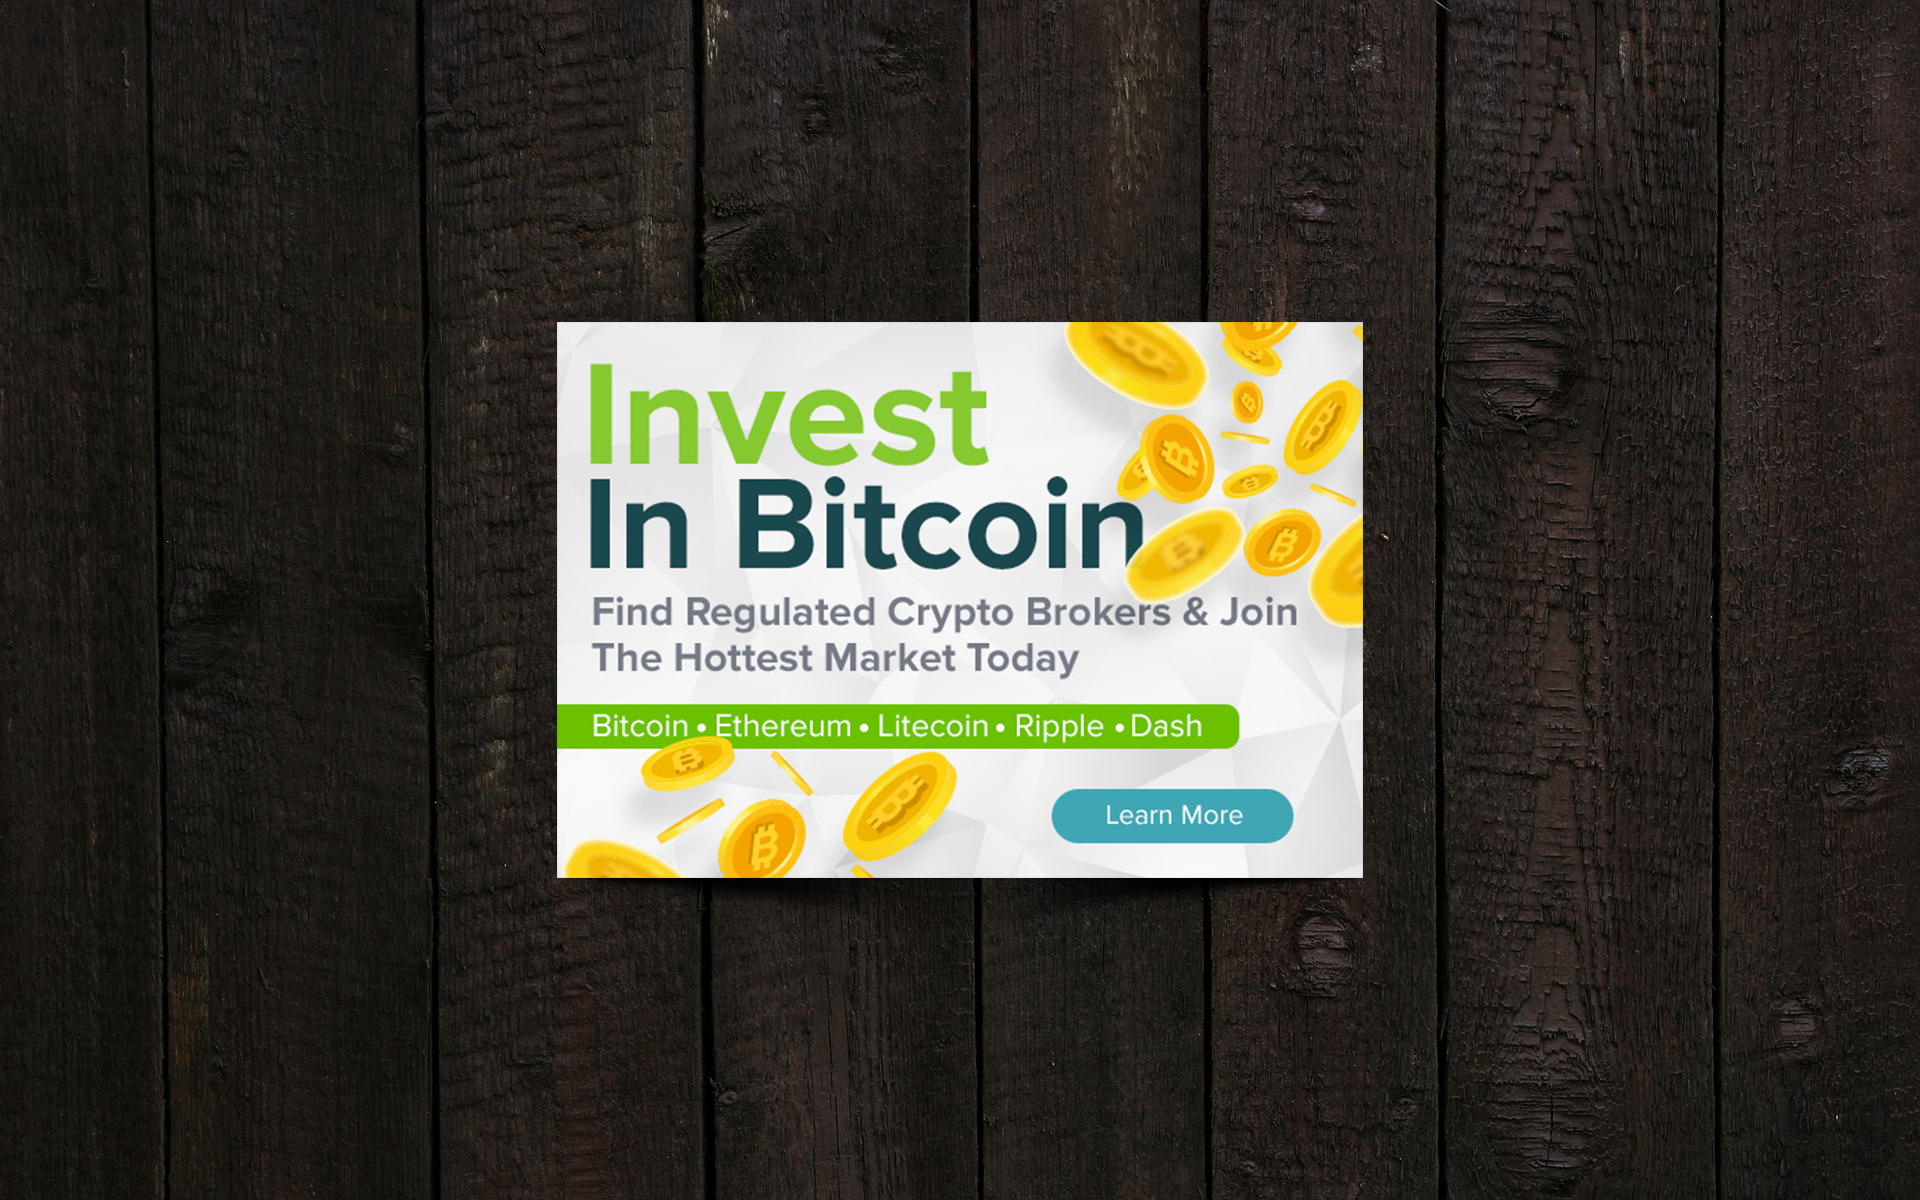 Google Adwords – Invest in Bitcoin